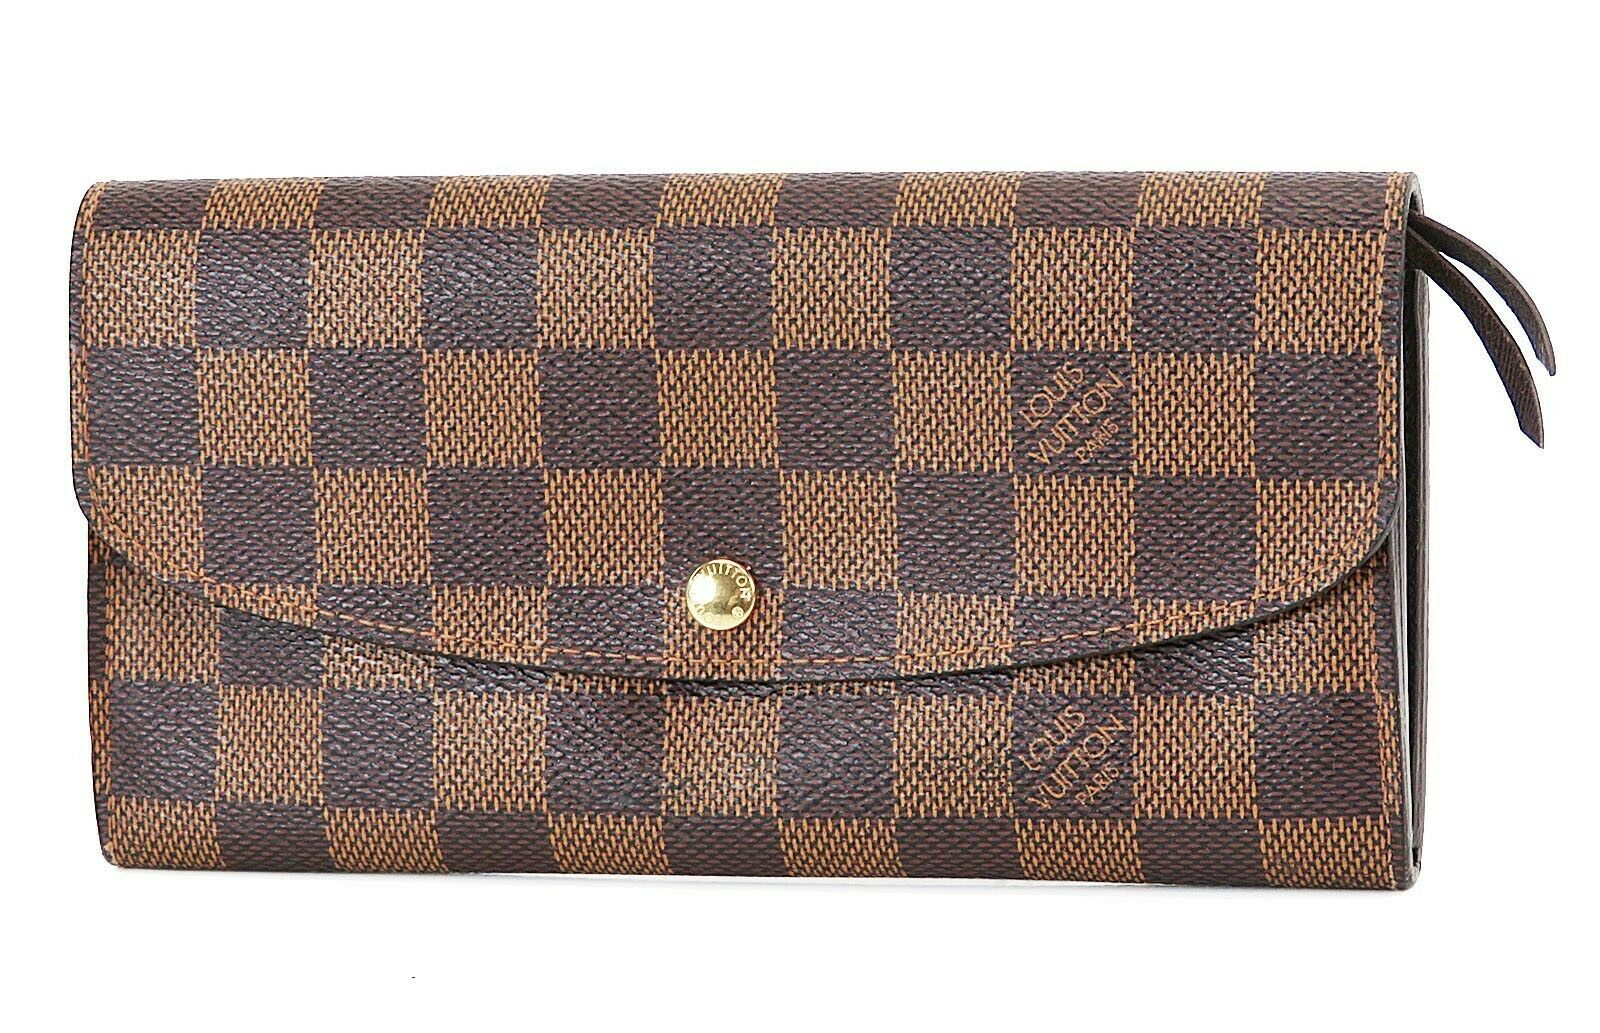 Primary image for Auth LOUIS VUITTON Emilie Long Wallet Damier Ebene Zippered Coin Purse #36822